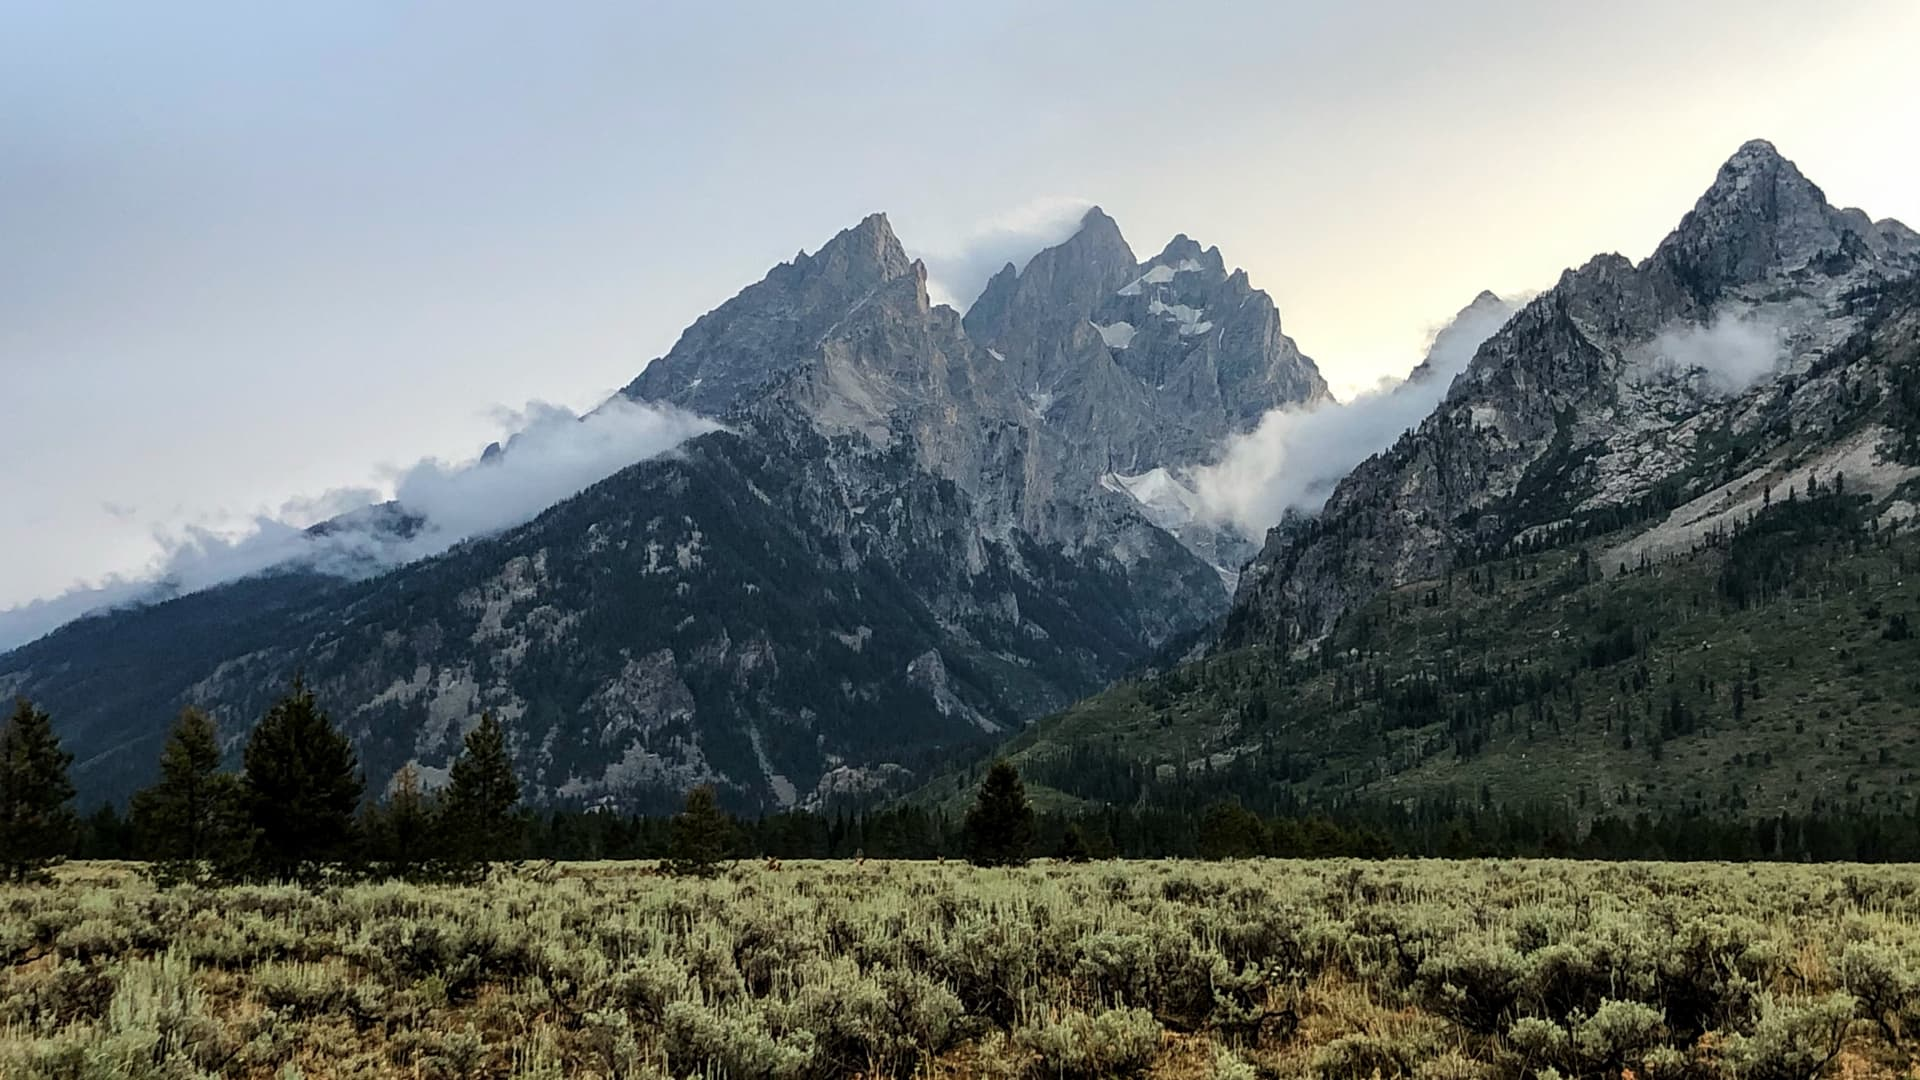 The Cathedral Group in Grand Teton National Park, Wyoming.